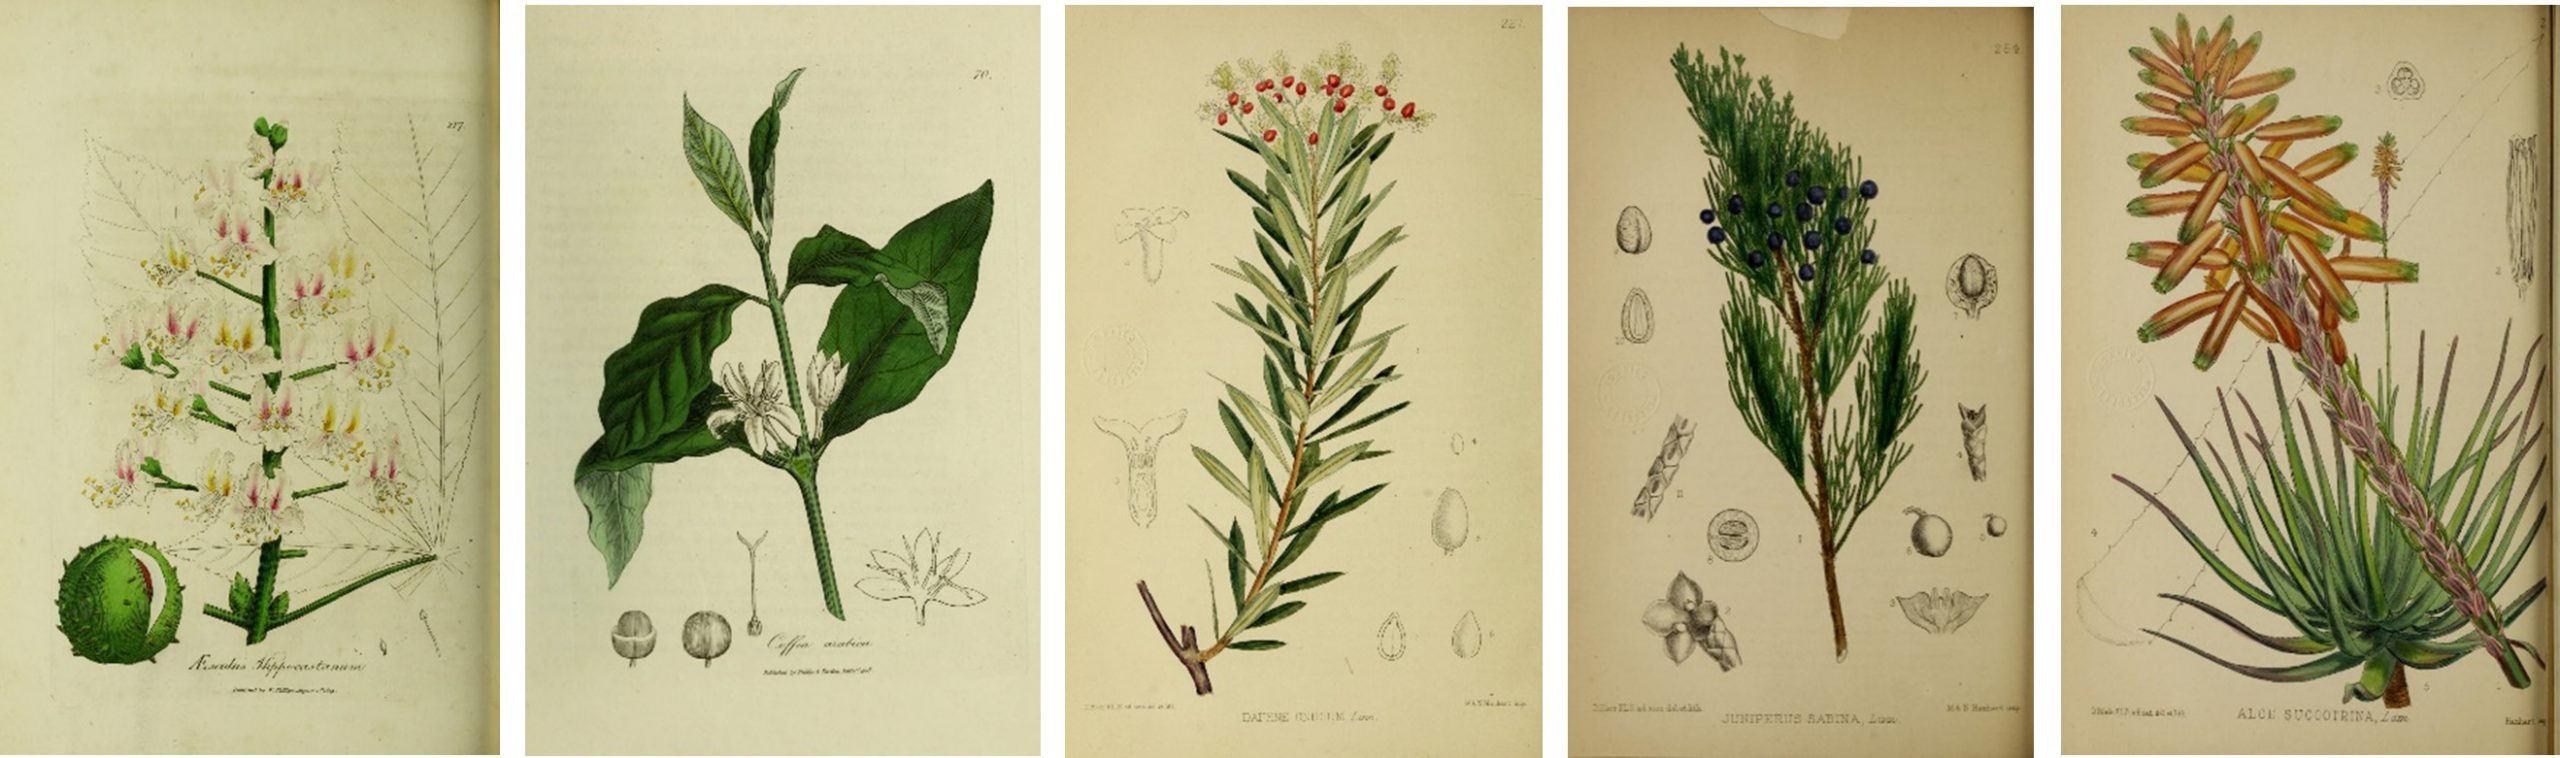 Series of botanical plates including water chestnut,  coffee, flax, juniper, and aloe.